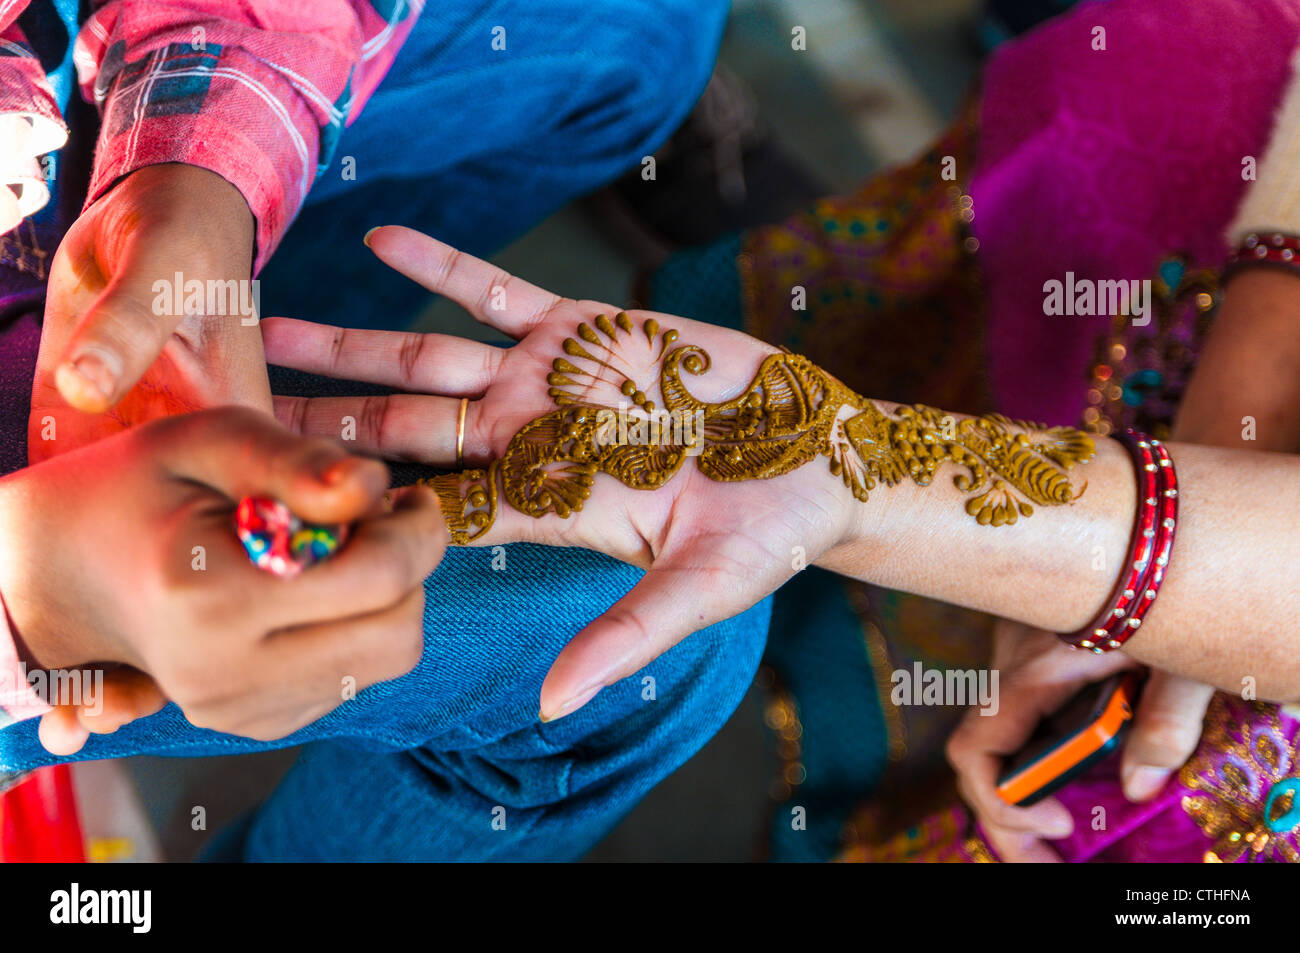 An Indian woman gets henna tattoos on the hands, India - Stock Image